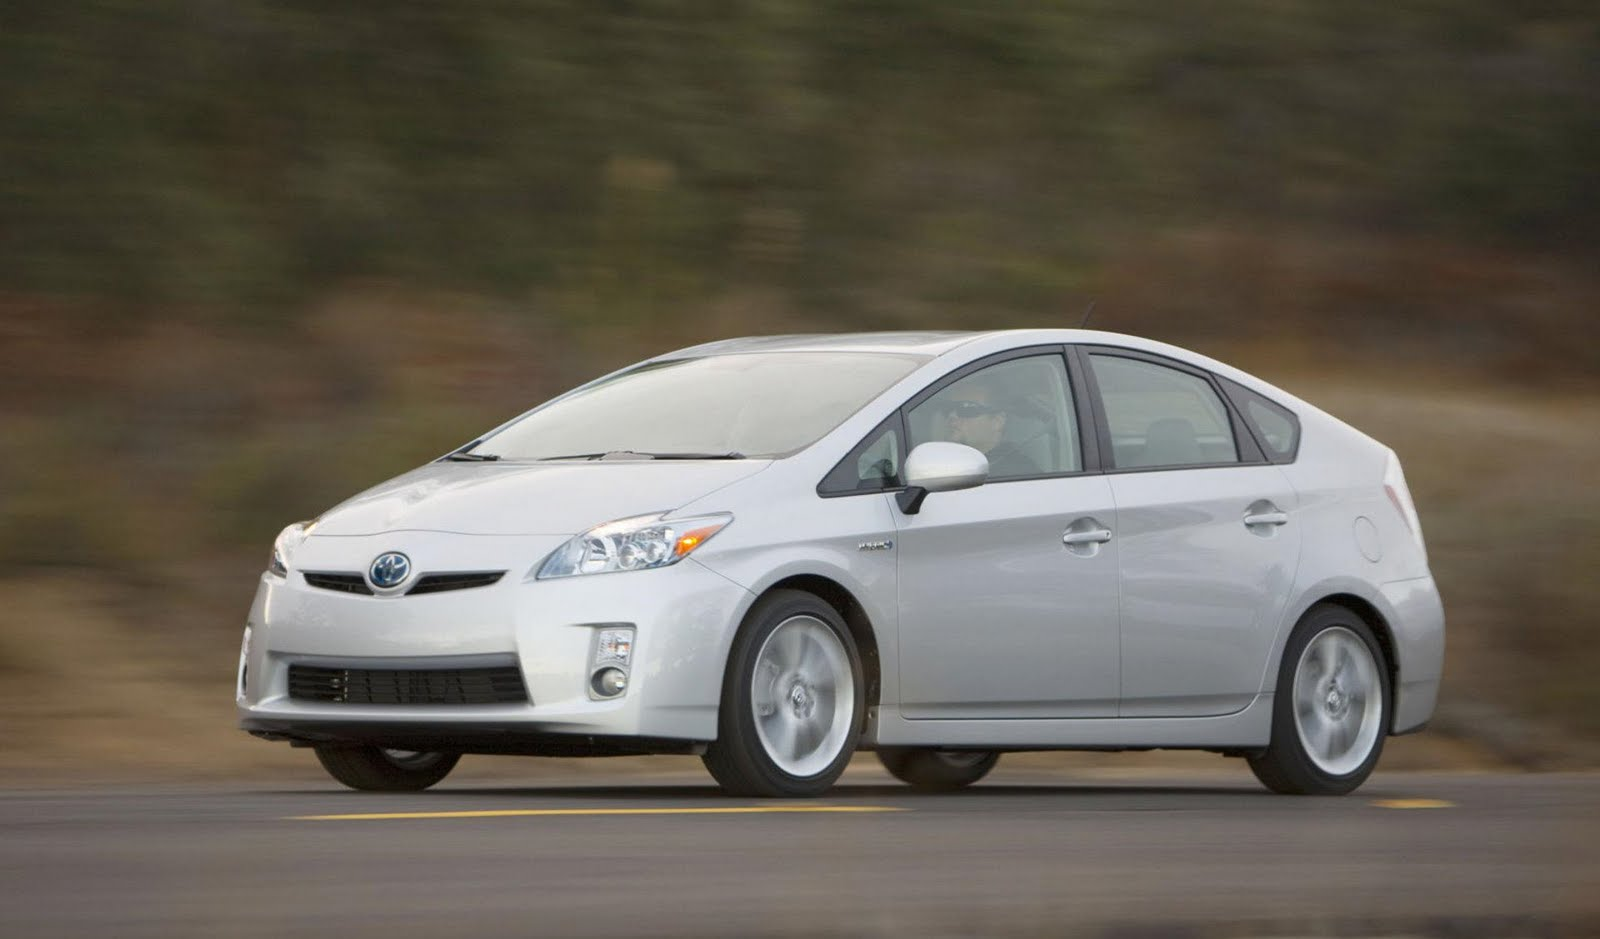 how many miles per gallon does a 2015 hybrid prius get autos post. Black Bedroom Furniture Sets. Home Design Ideas